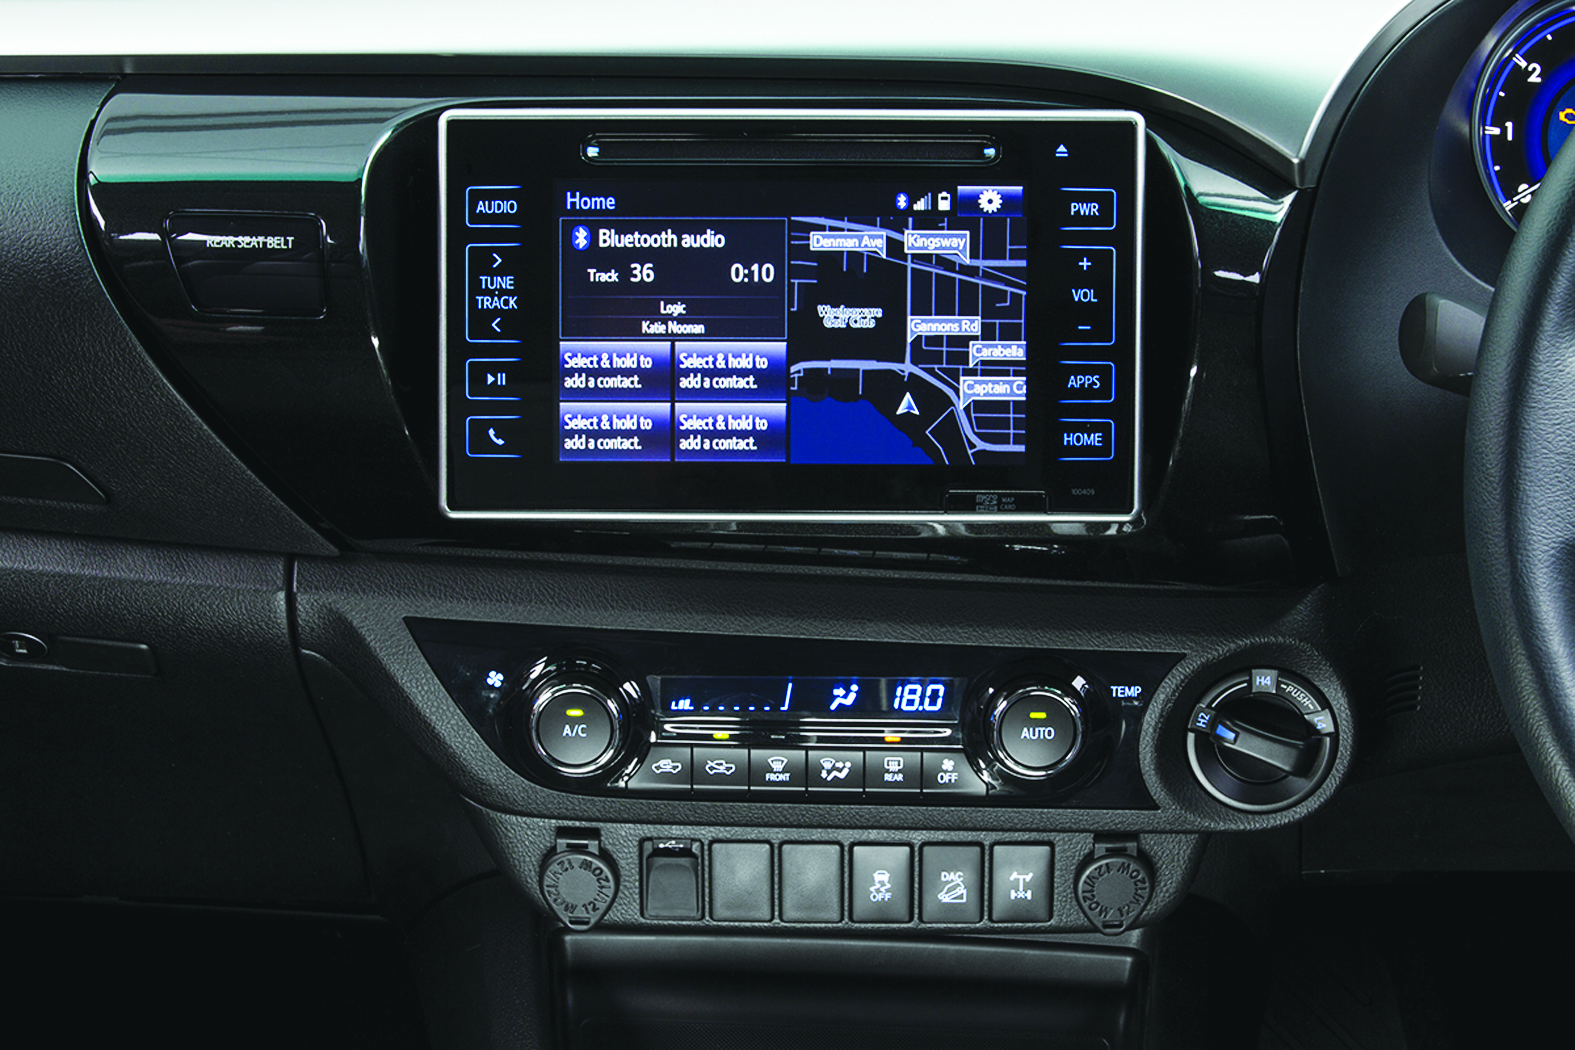 The large touchscreen display features everything you need.